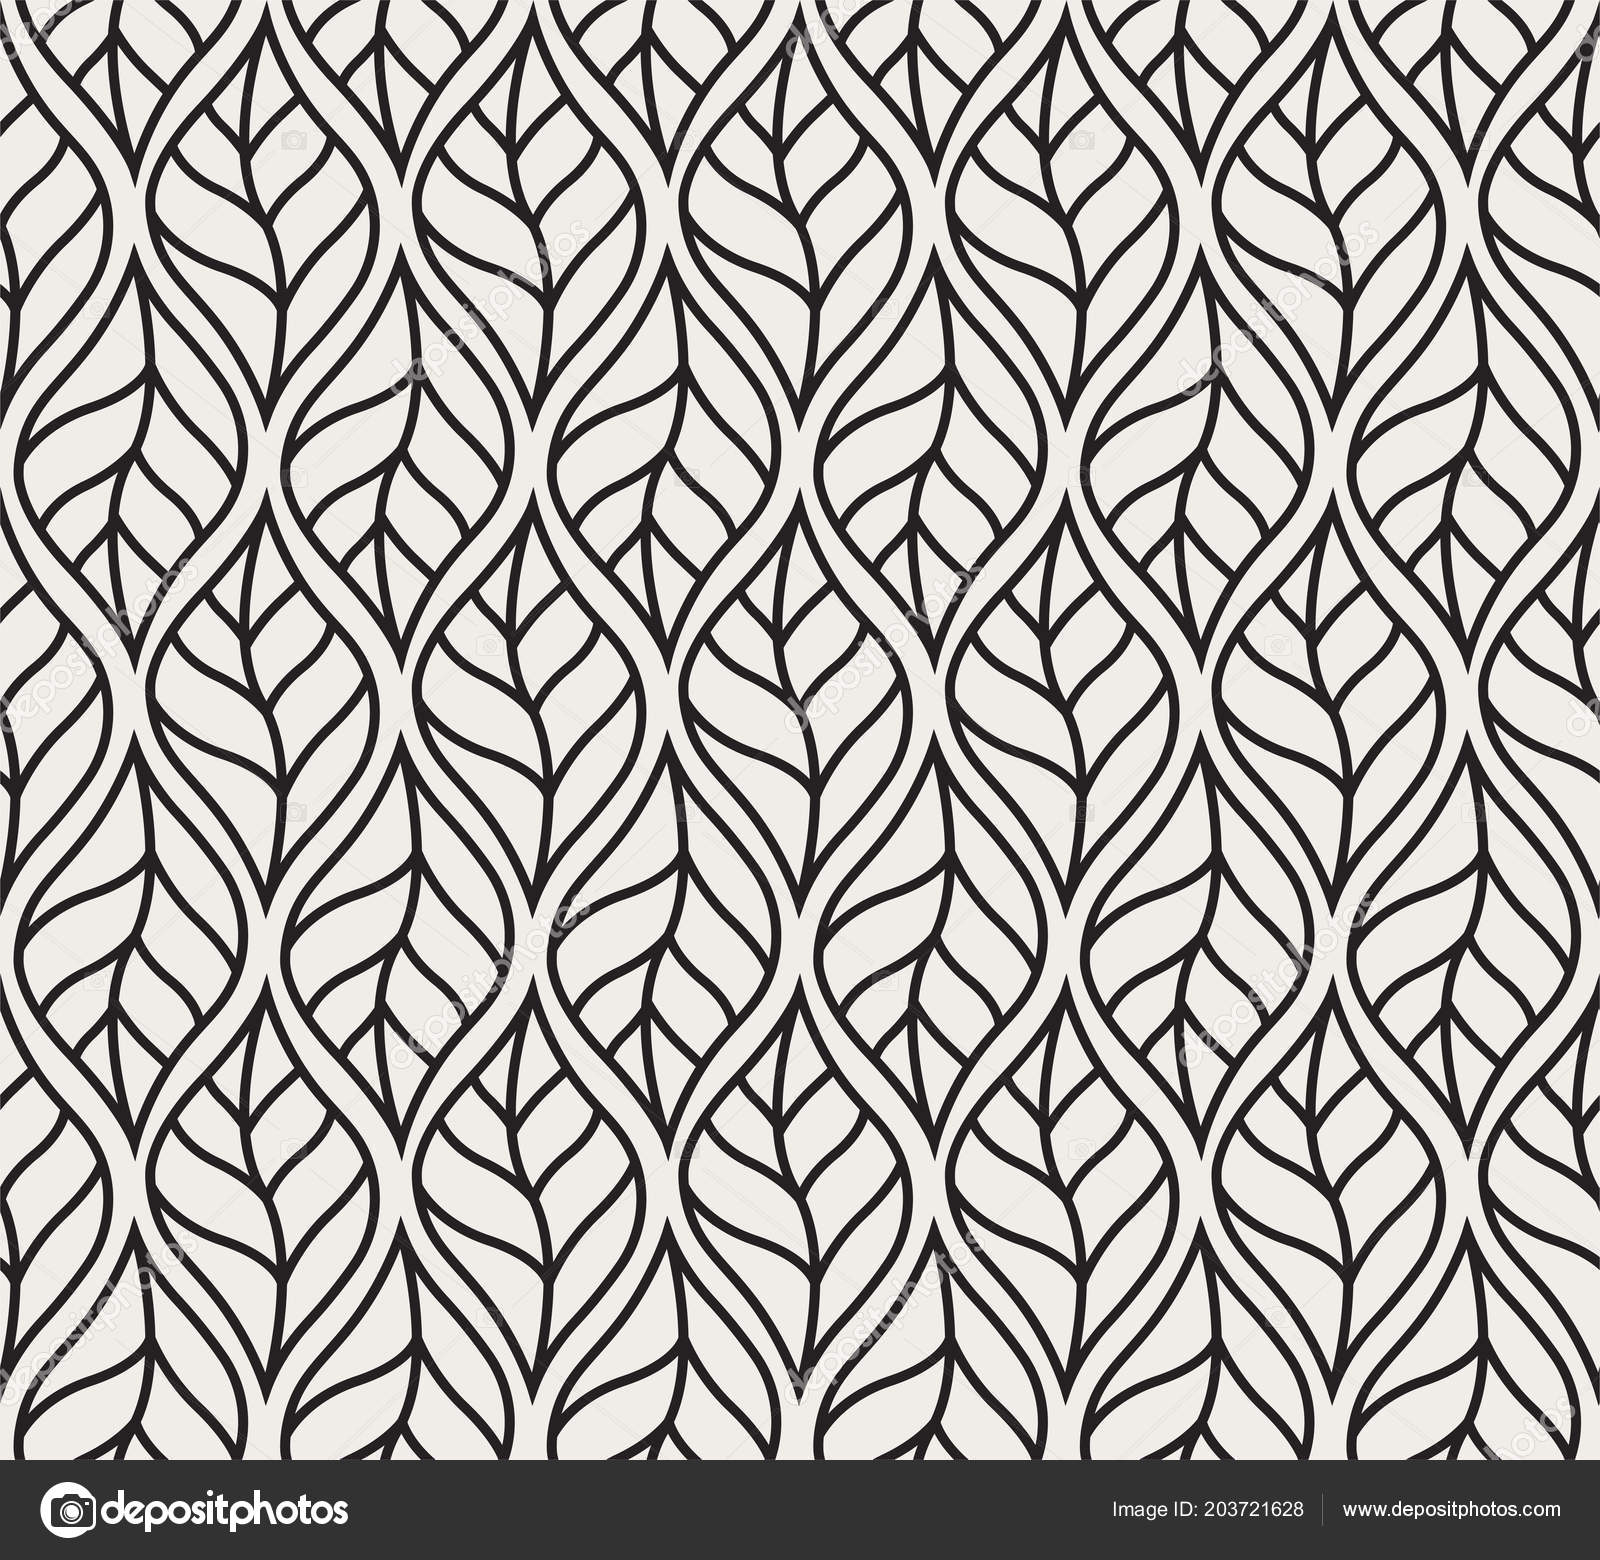 Vector Geometric Leaves Seamless Pattern Abstract Style